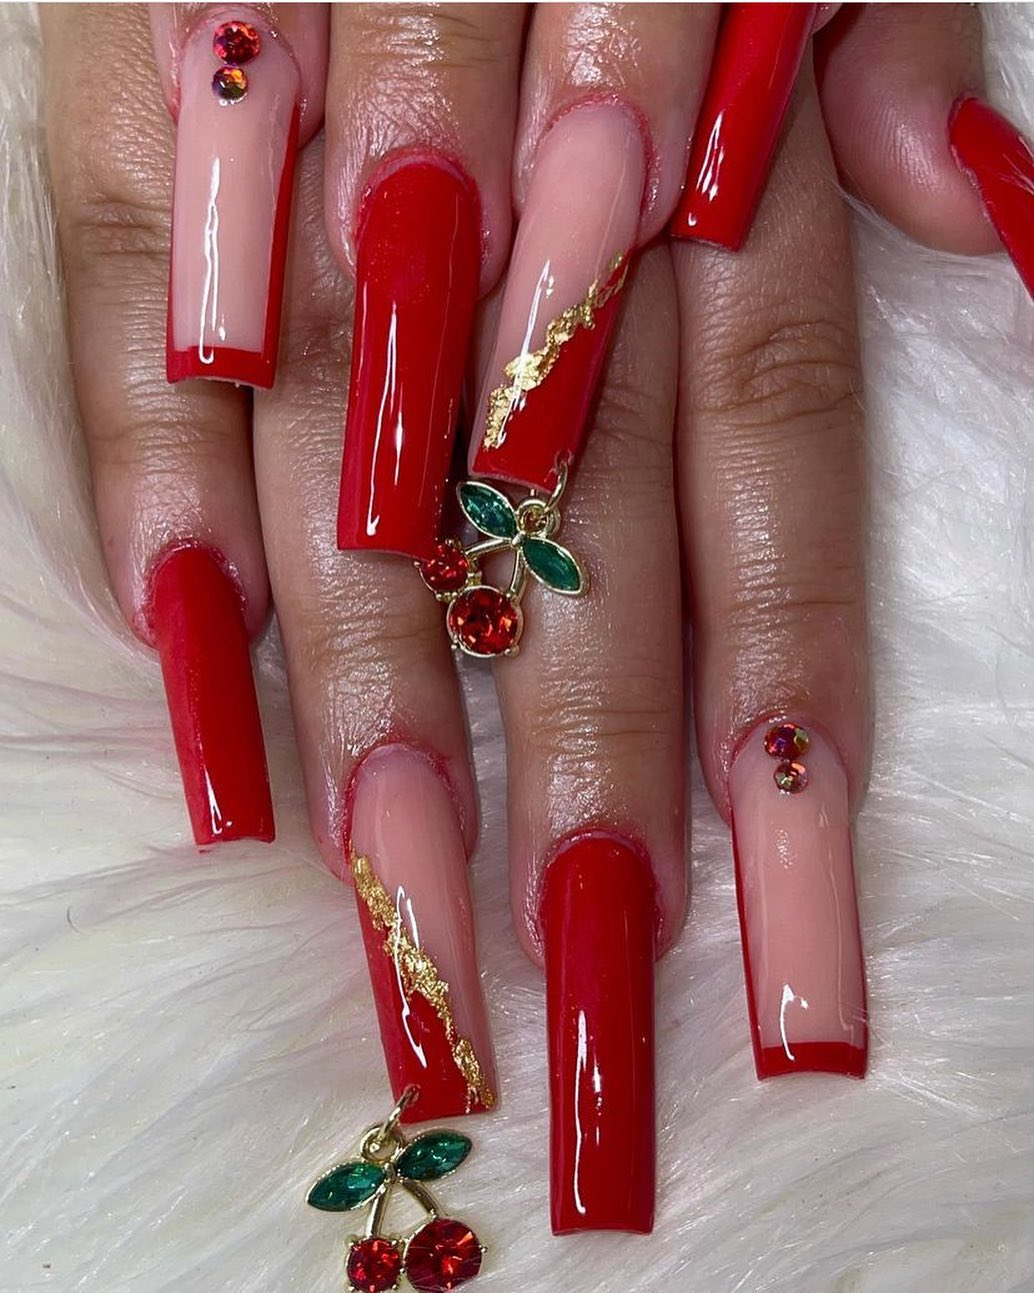 Cherry red nails with rhinestones and cherry decals